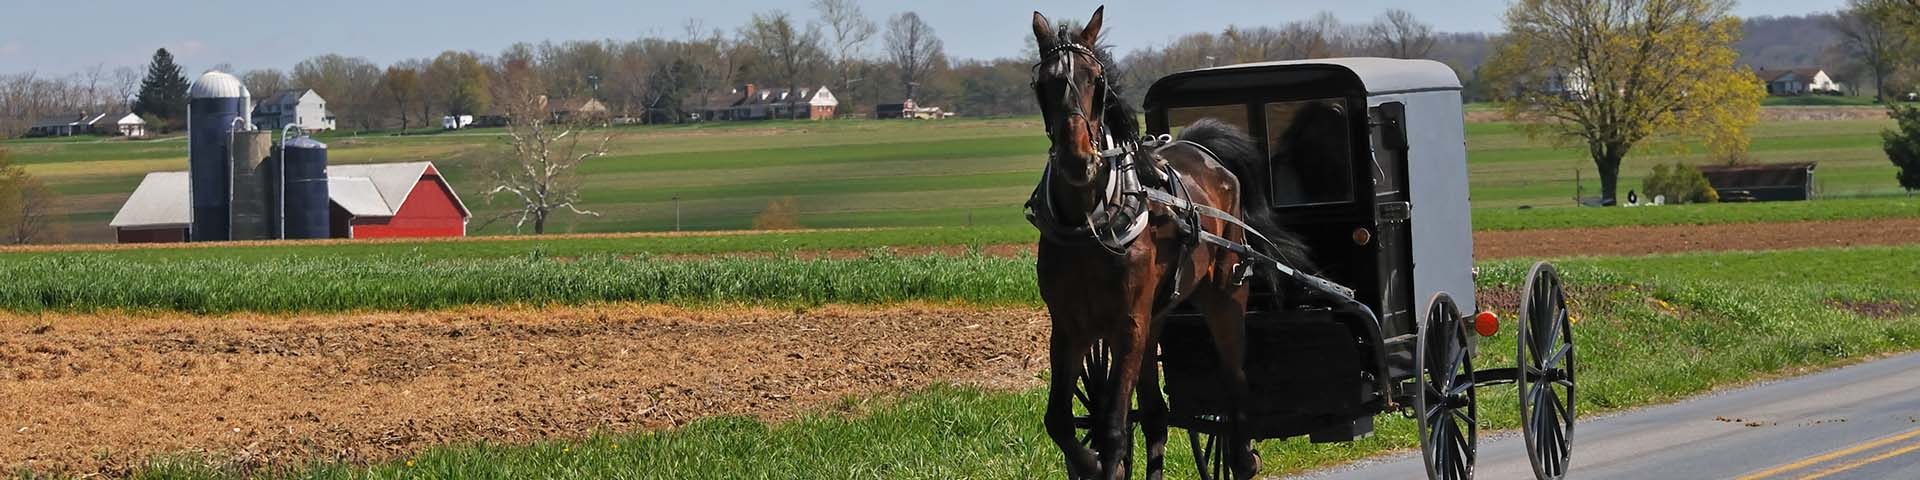 The Amish Heritage Foundation | Reclaiming our Amish story